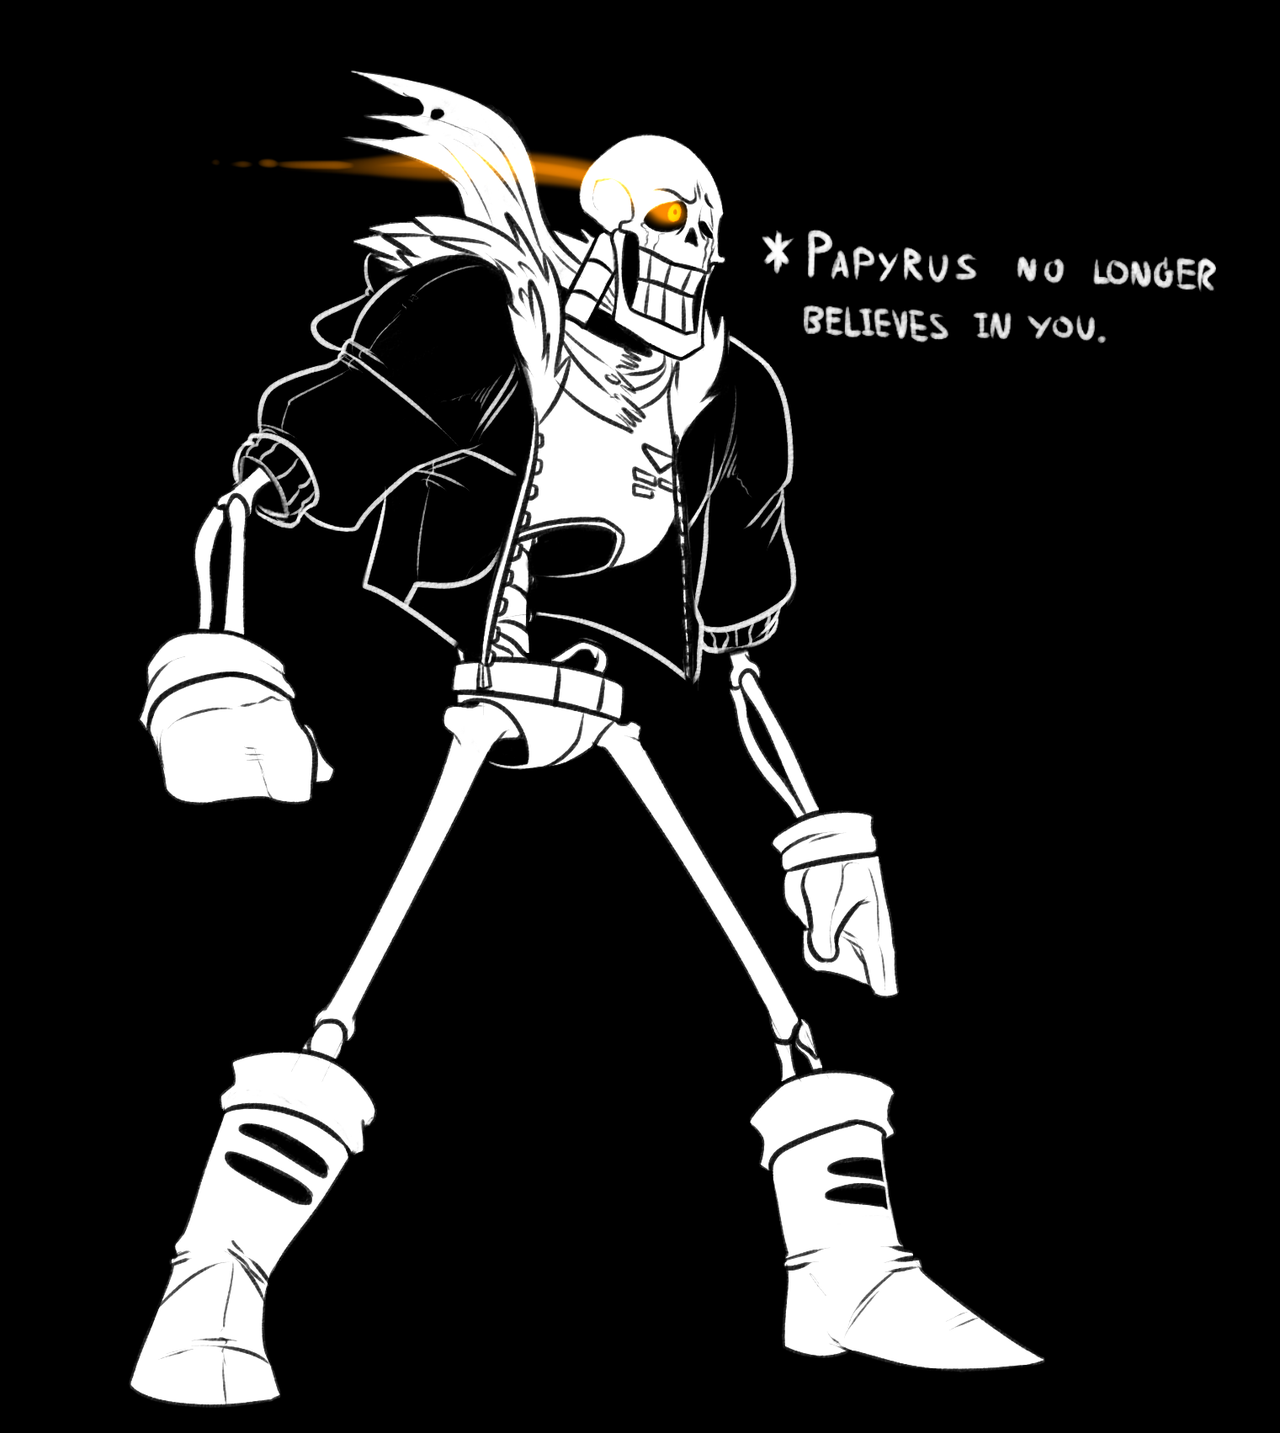 disbelief papyrus - Google Search | Undertale | Ghost rider